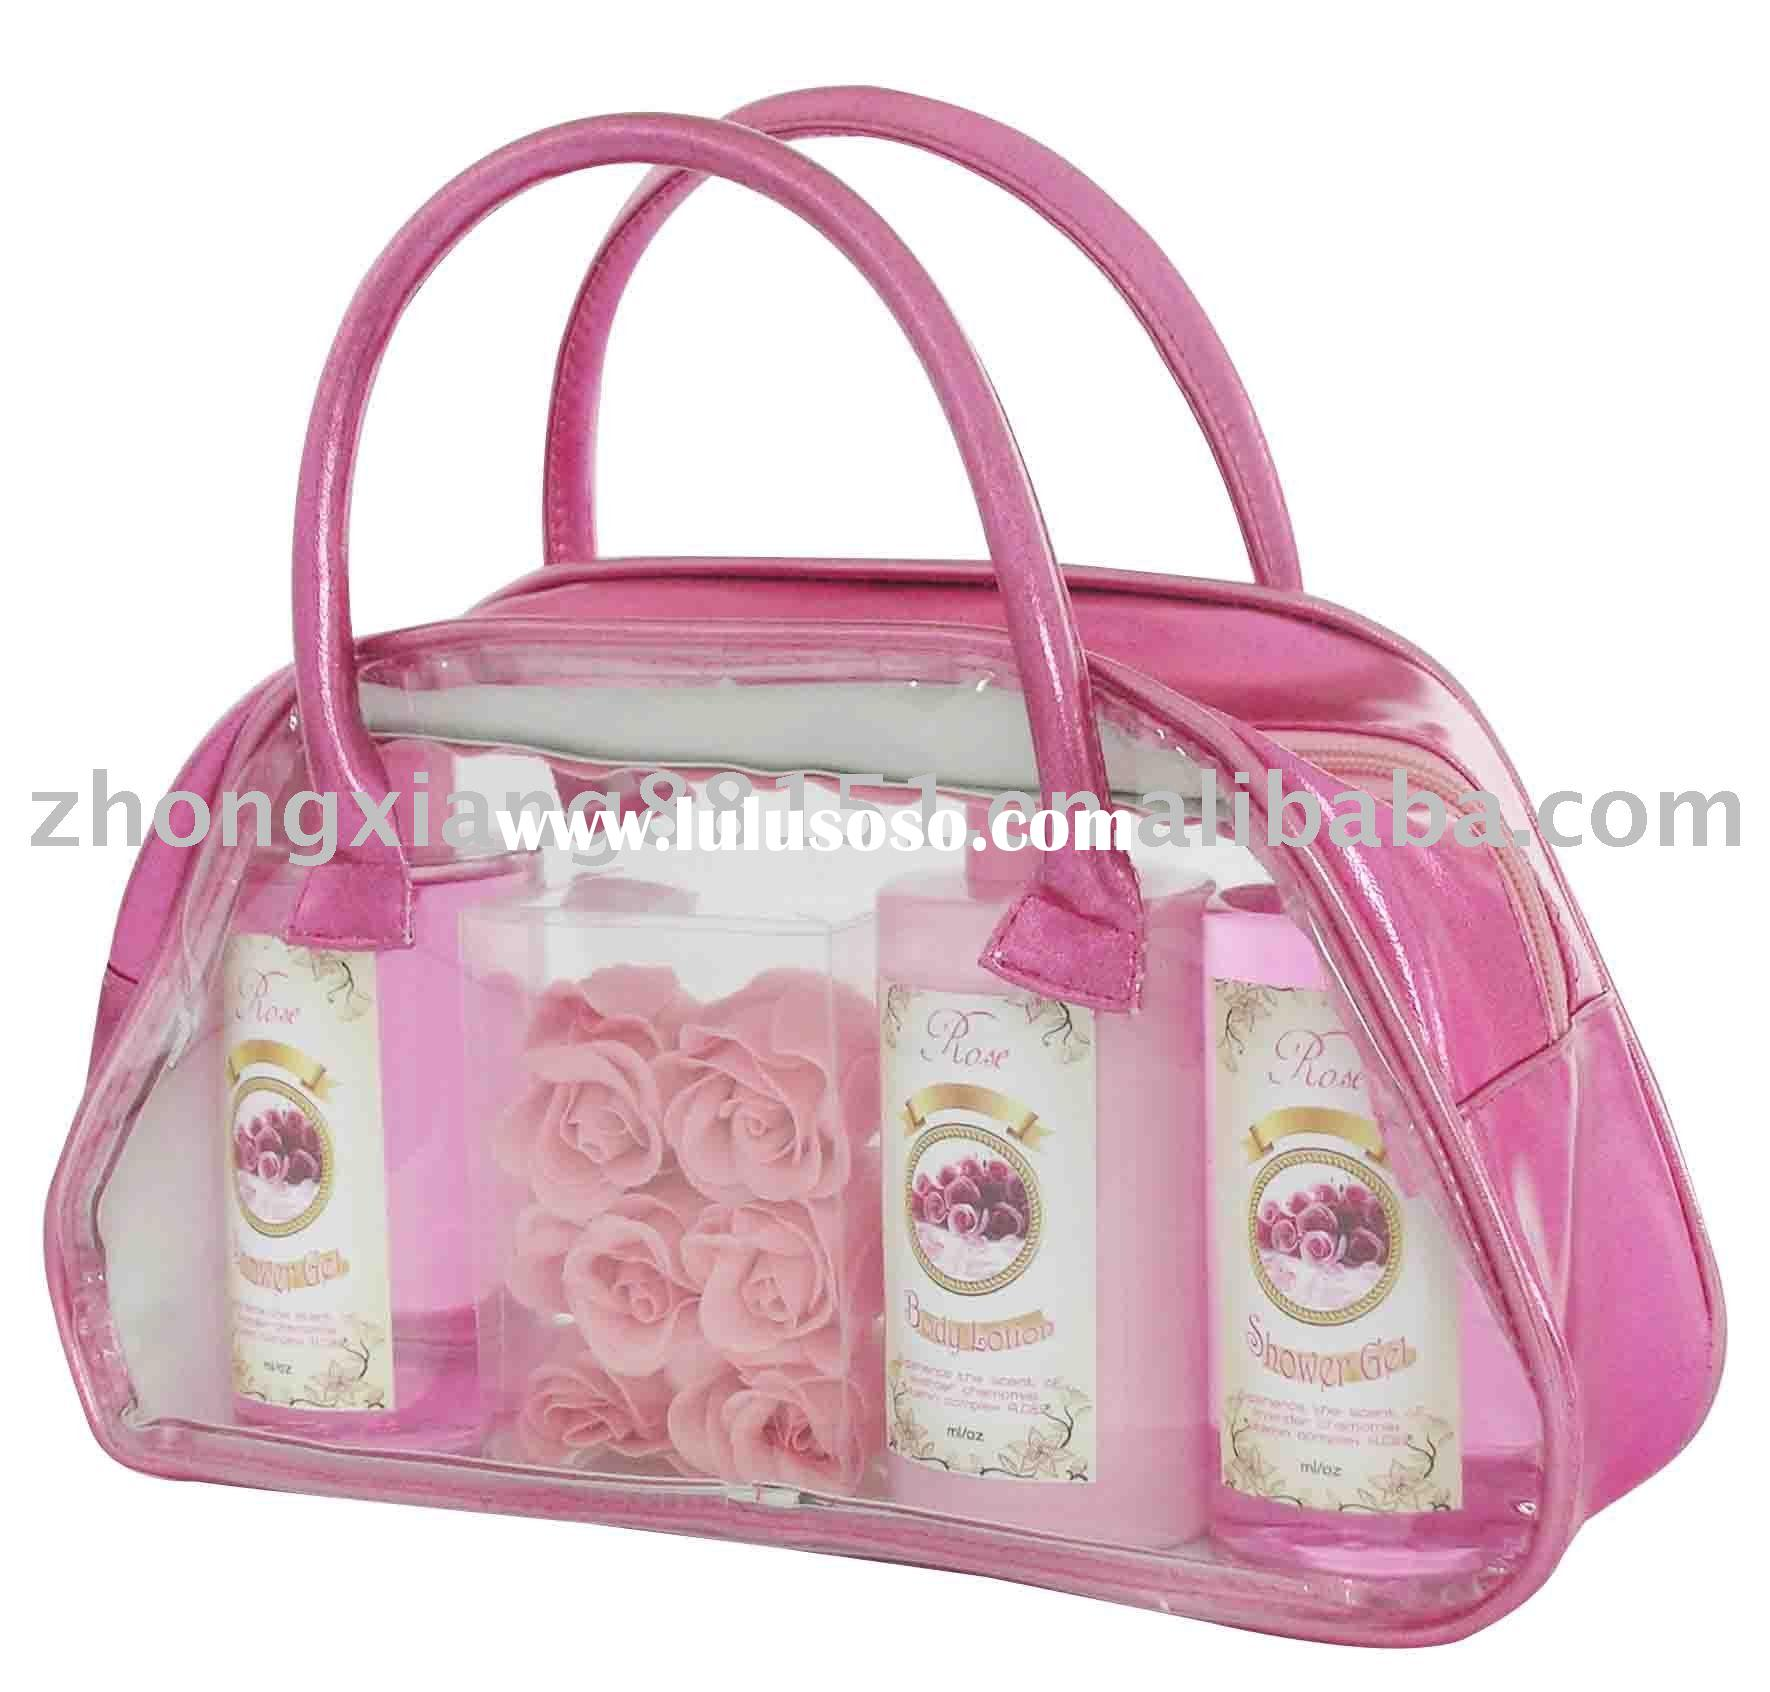 Bath gift set( Shower gel, bubble bath,body lotion,bath soap)